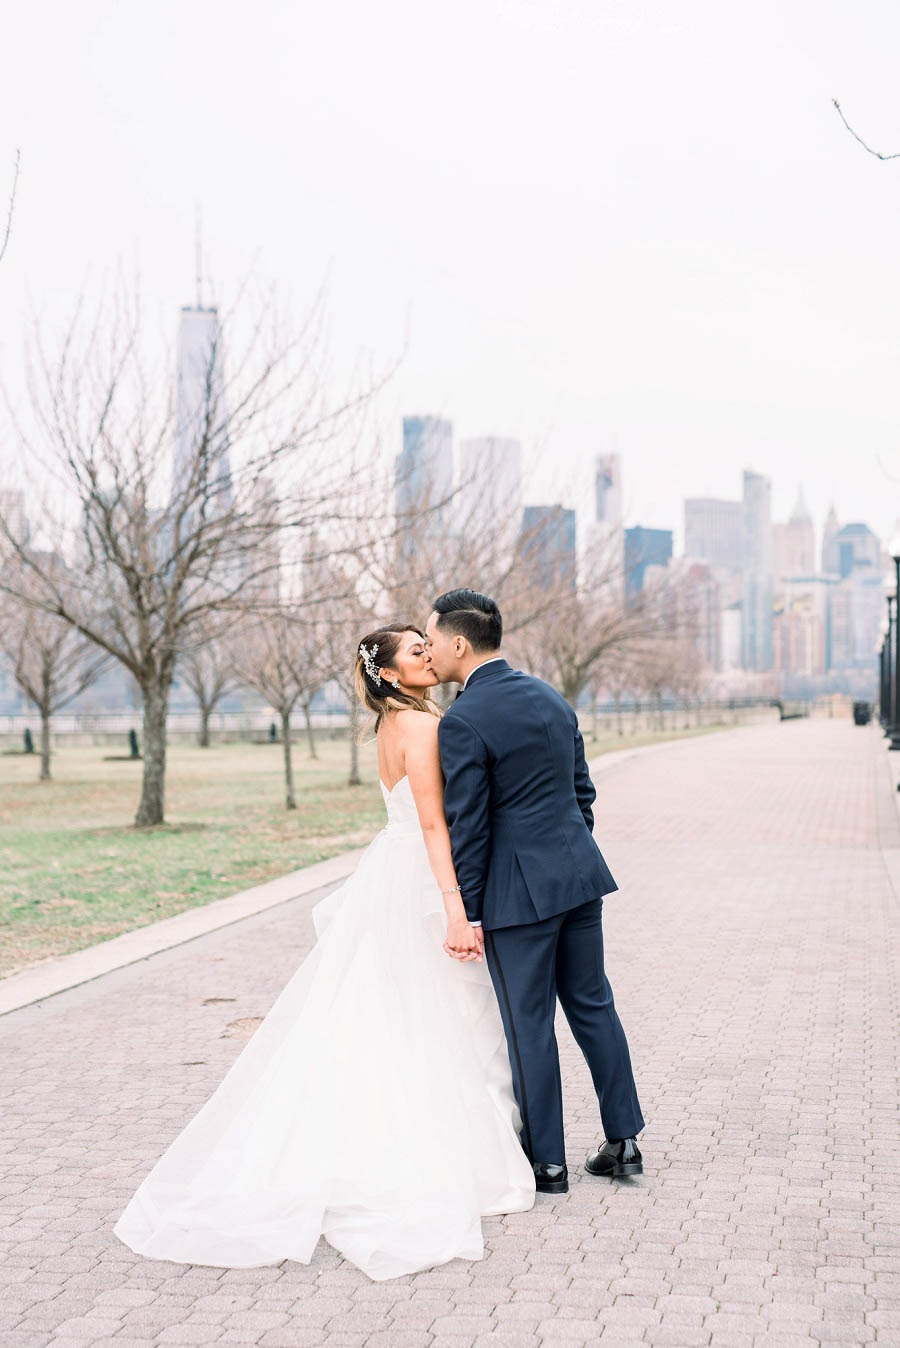 Liberty House wedding in Jersey City photographed by NJ wedding photographer, Myra Roman Photography